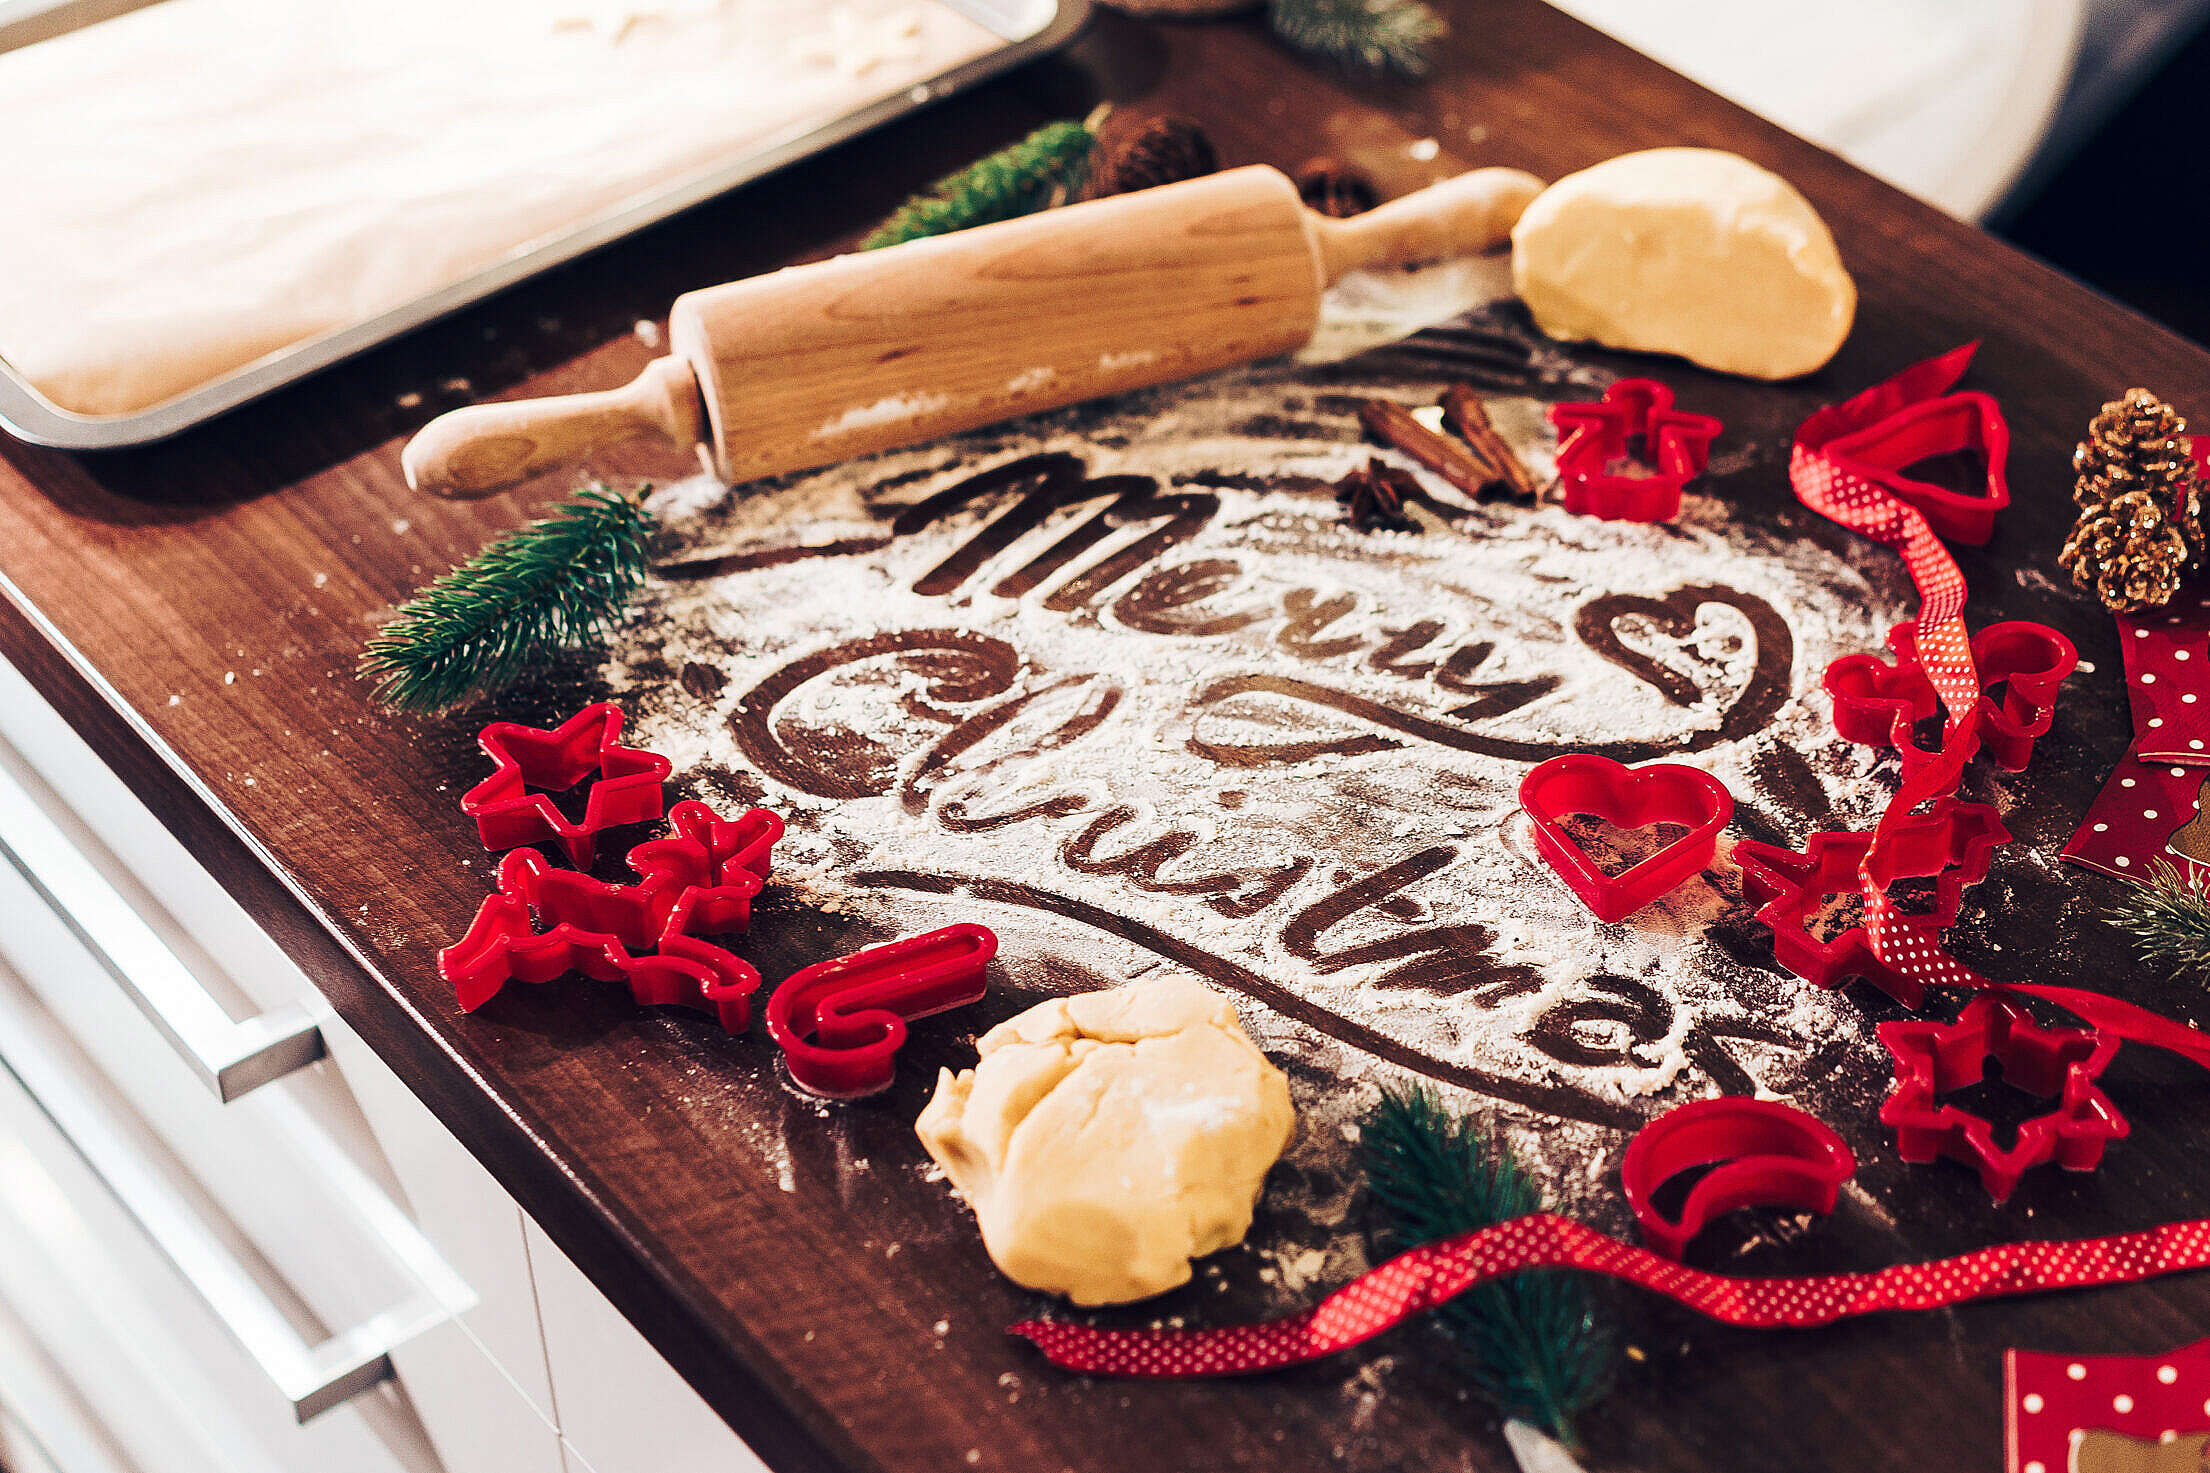 Merry Christmas Food Lettering in Flour Free Stock Photo